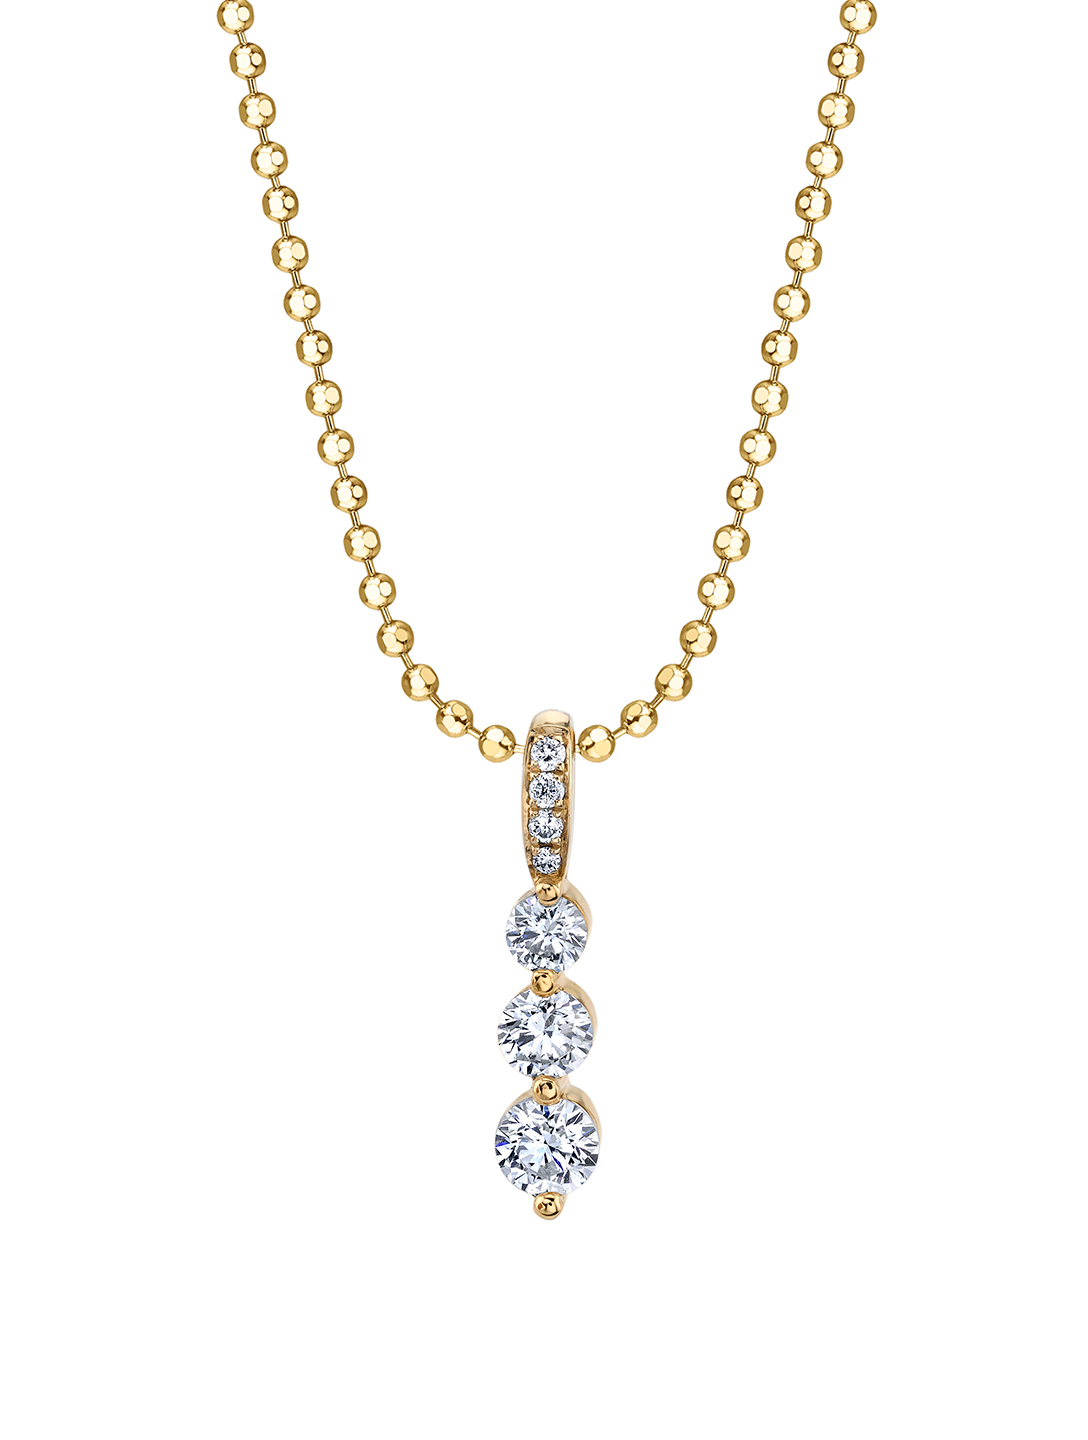 ANITA KO Small 18K Yellow Gold Twiggy Necklace With Diamonds Womens Gold